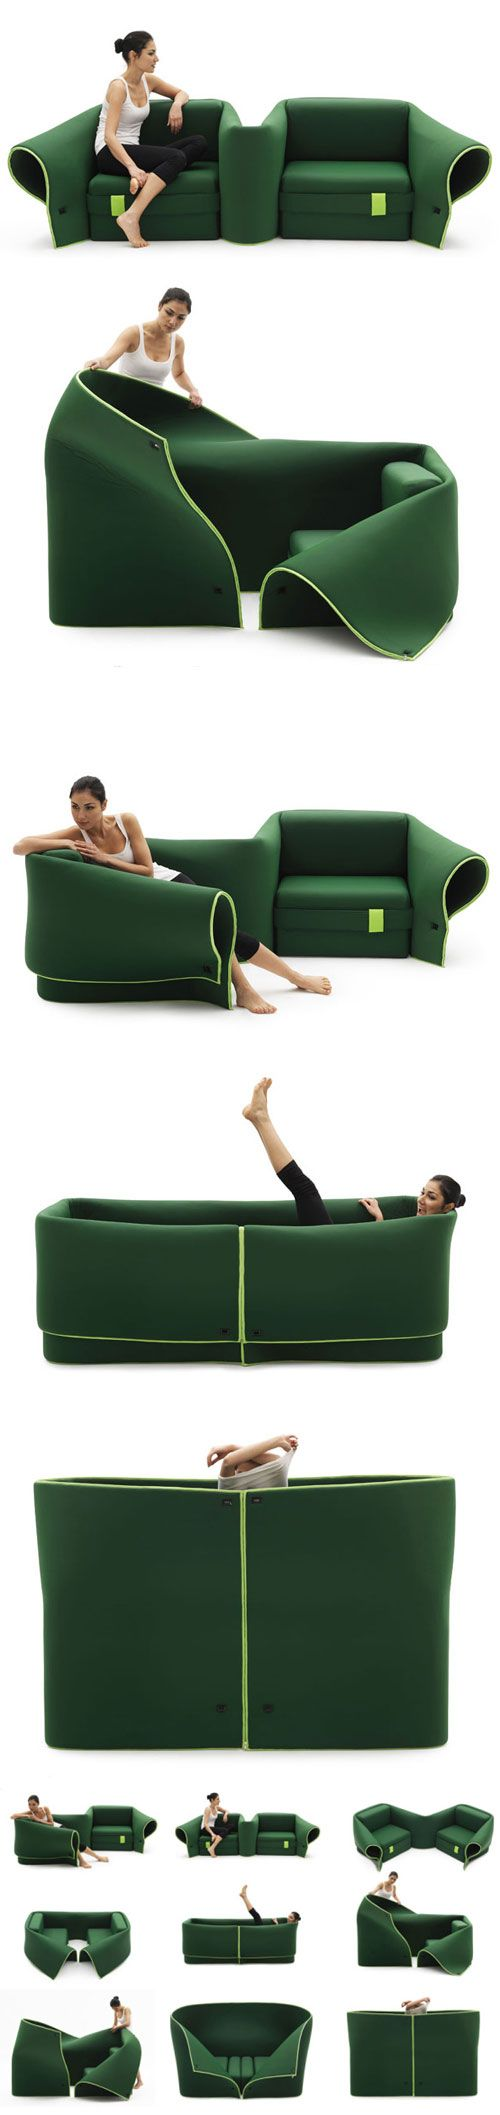 Convertible Sofa. THIS IS THE COOLEST THING EVER